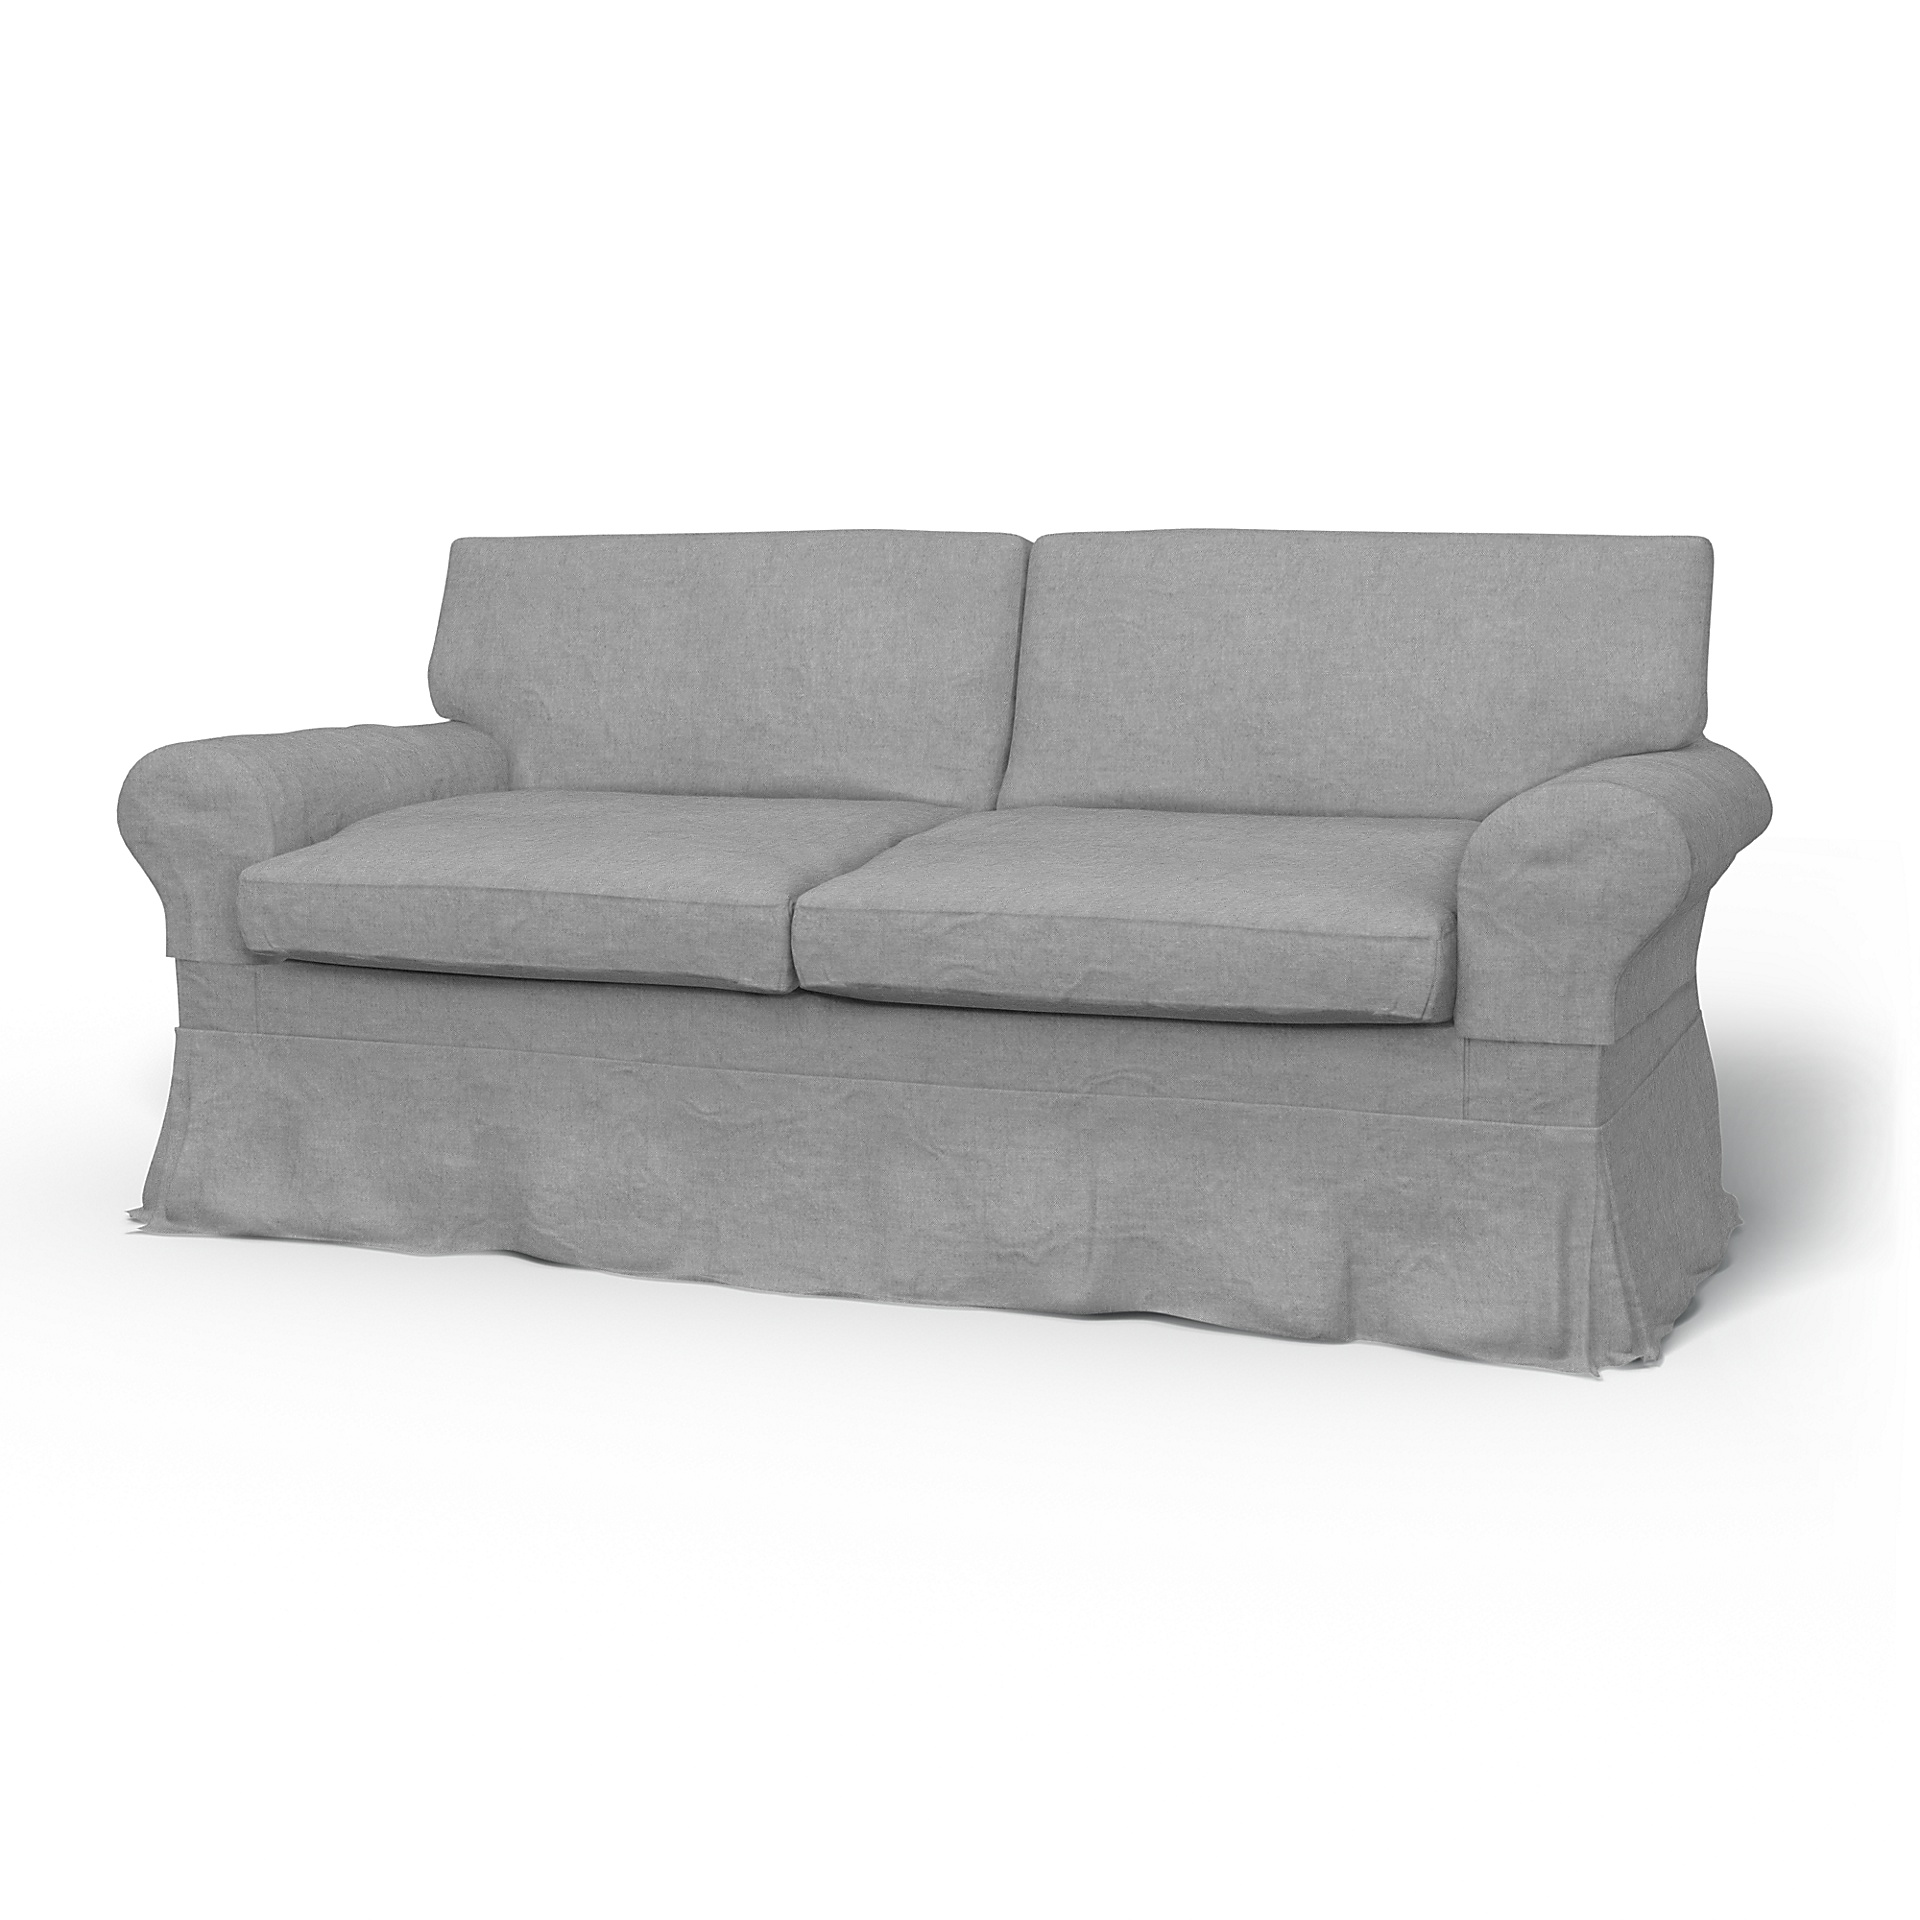 Ikea Ektorp 2 Seater Sofa Bed Cover Loose Fit Bemz